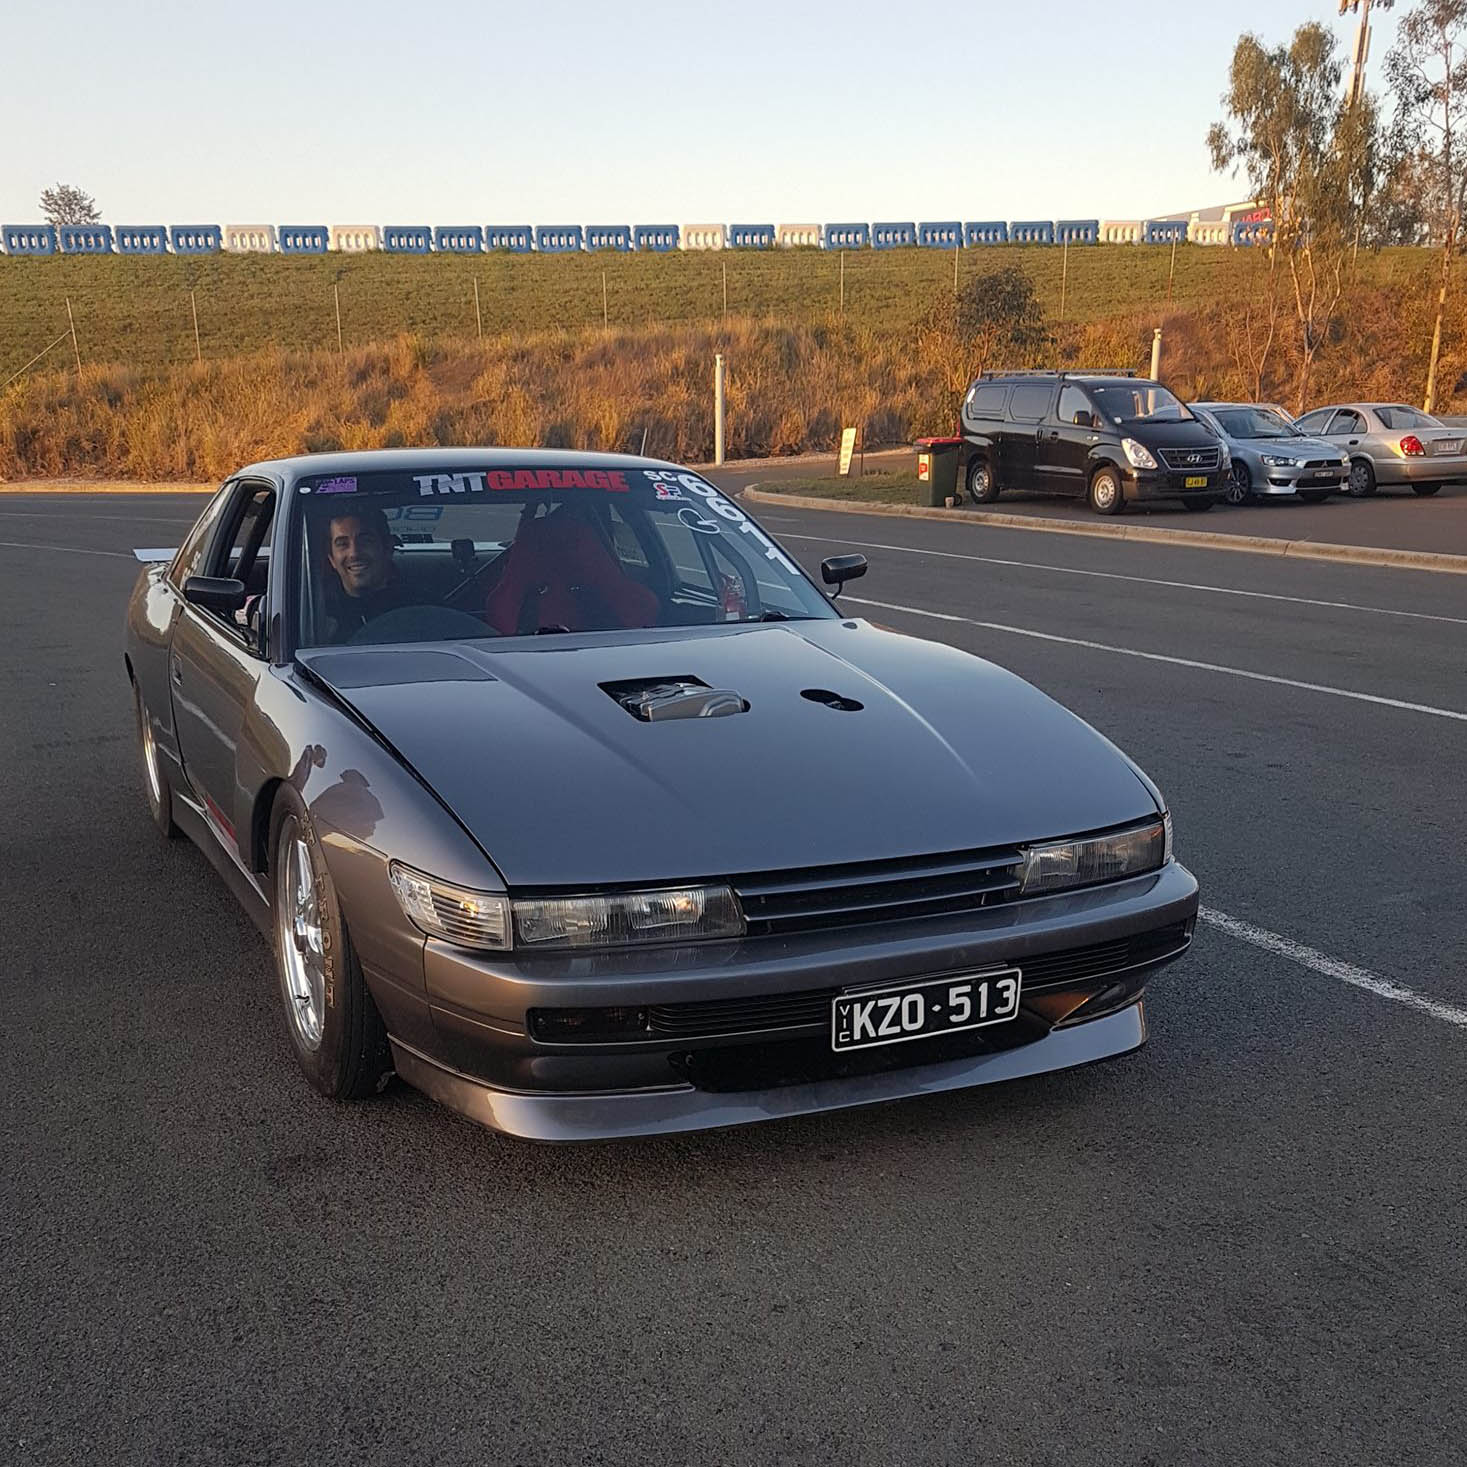 Nissan S13 with a turbo K20 inline-four